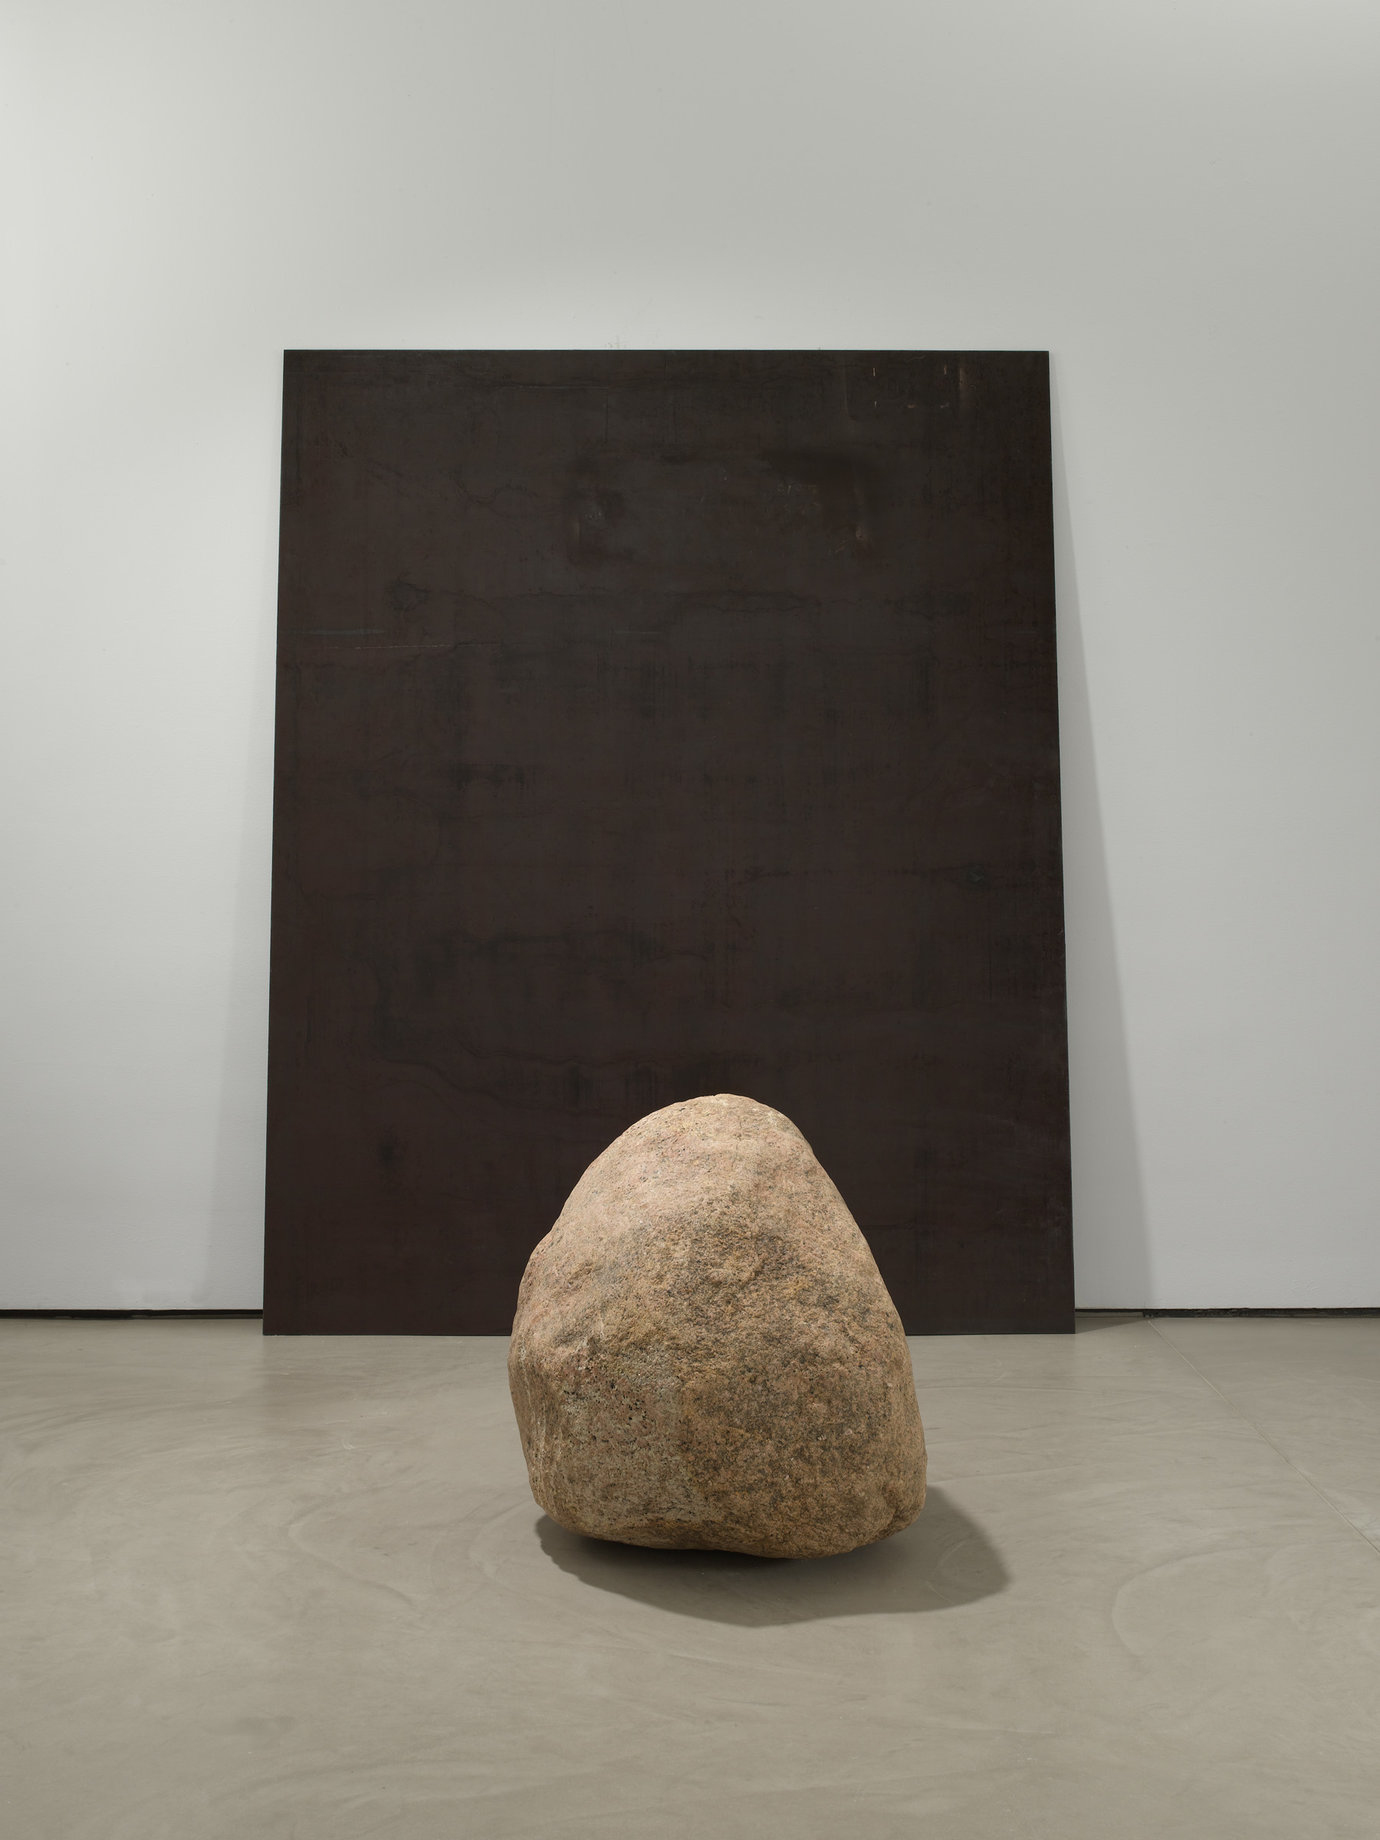 ", 2008. Steel, stone, 9&apos; 2"" x 7&apos; 5"" x 3/8"" (279.4 cm x 226.1 cm x 1 cm), steel plate&#x000A;32"" x 34"" x 36"" (81.3 cm x 86.4 cm x 91.4 cm), stone."